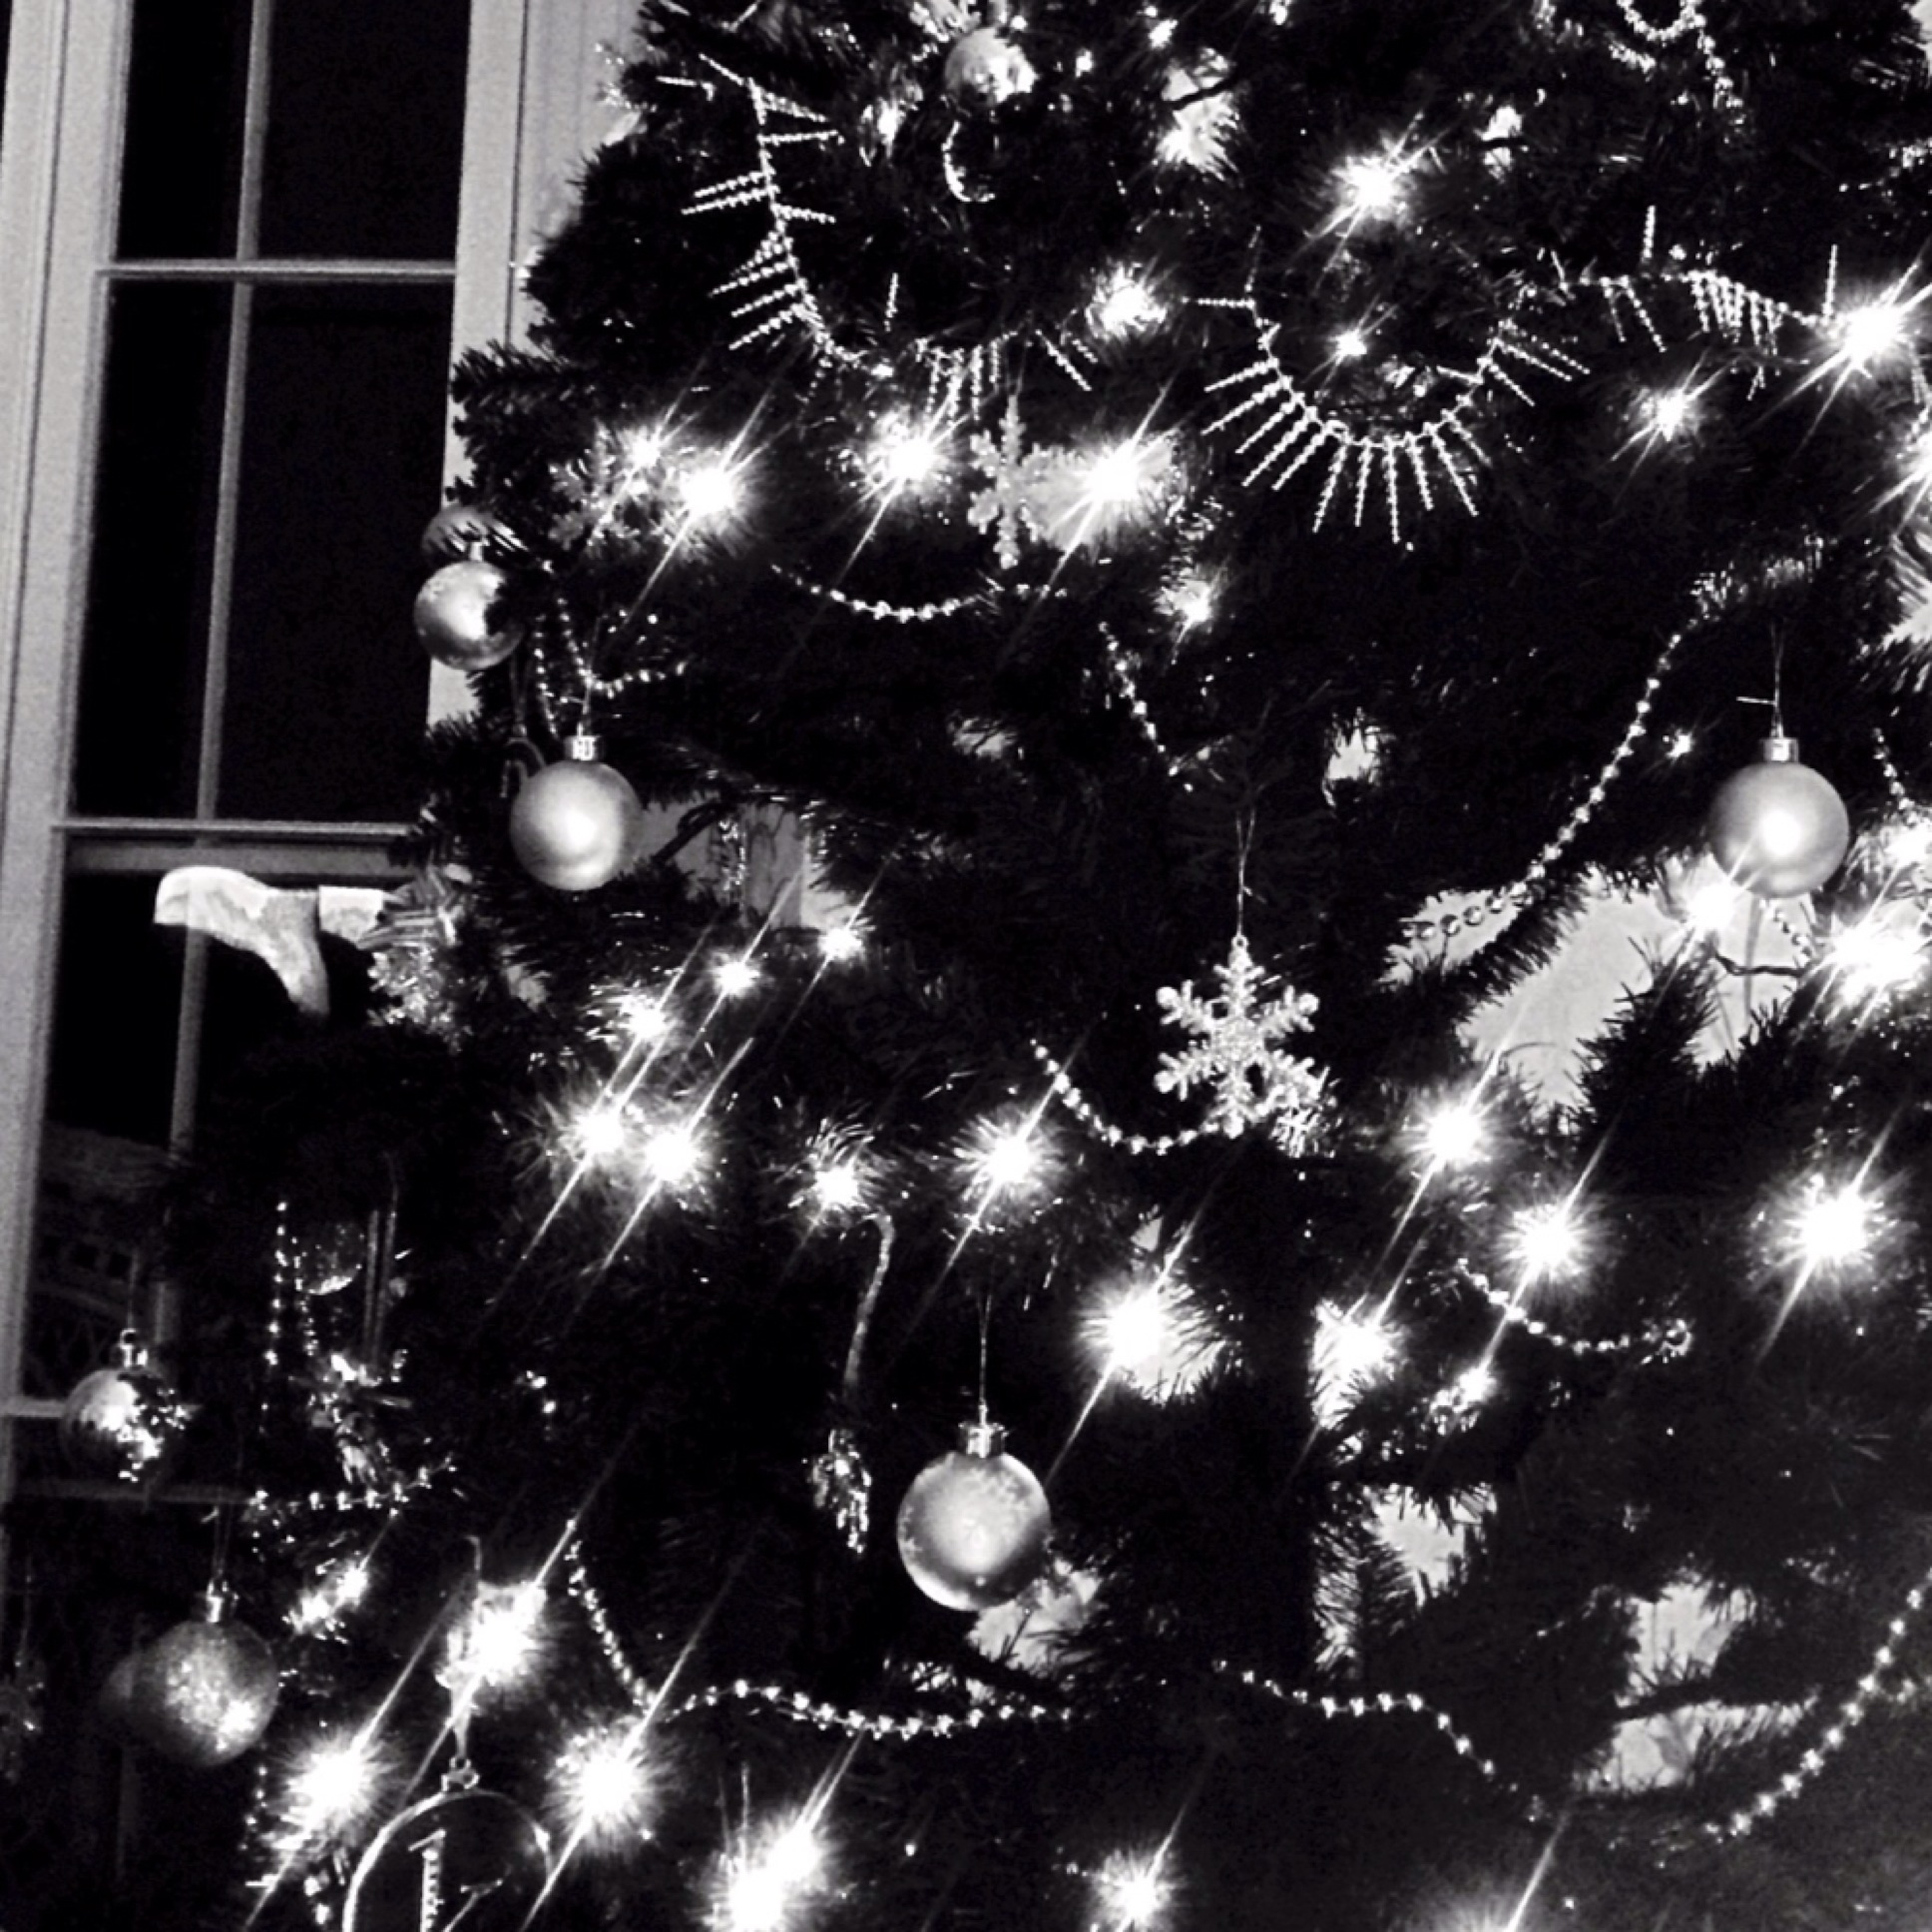 BW Photography Project Christmas Tree